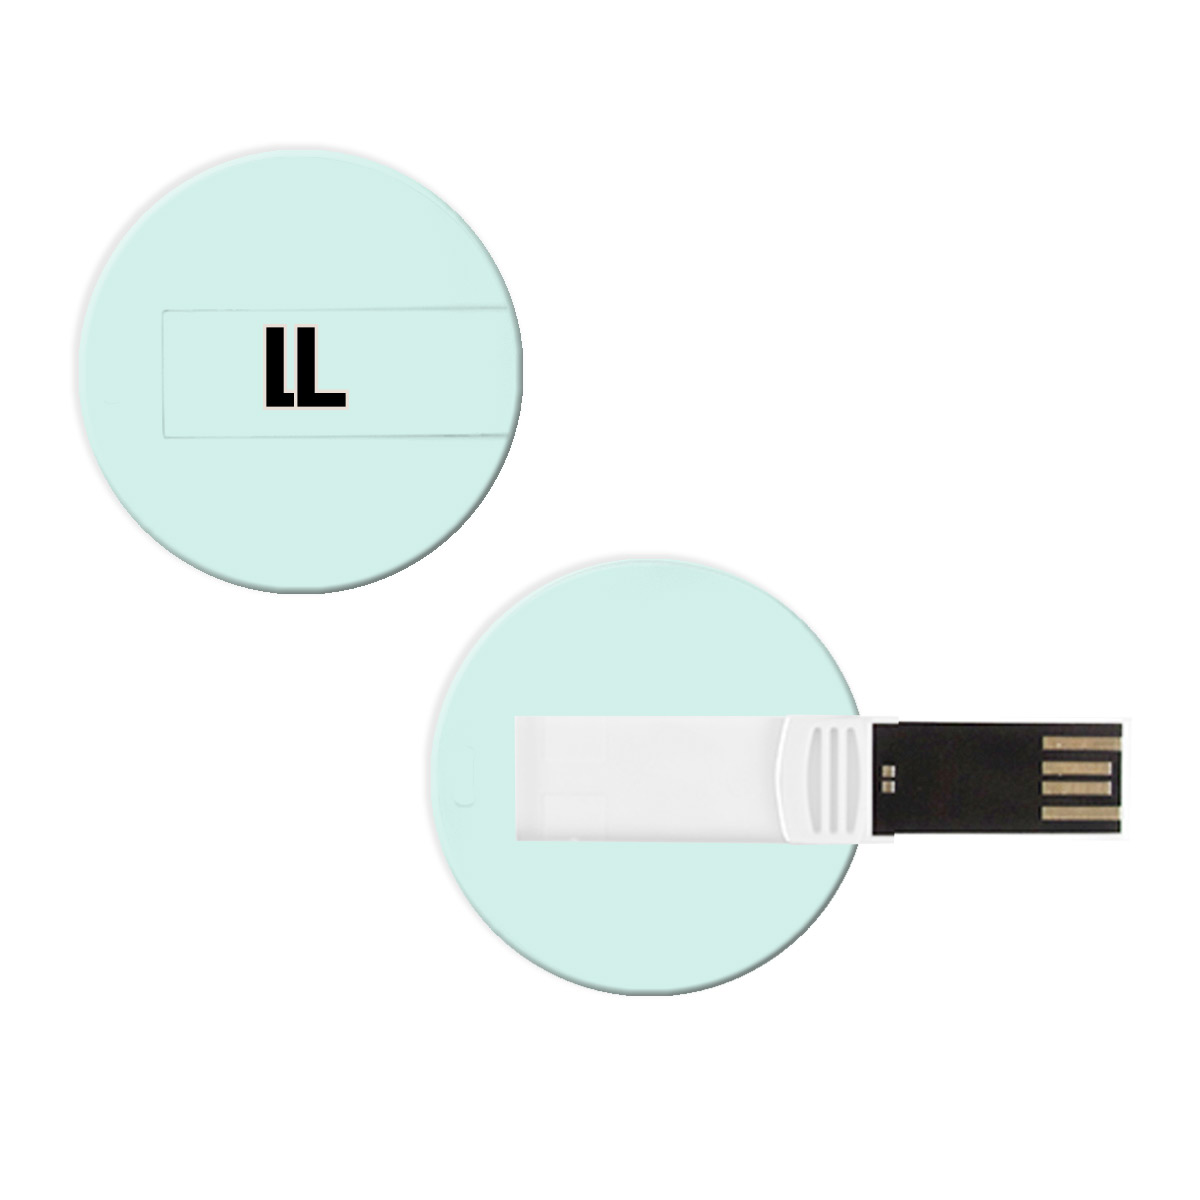 148060 flat circle usb 1gb full color bleed